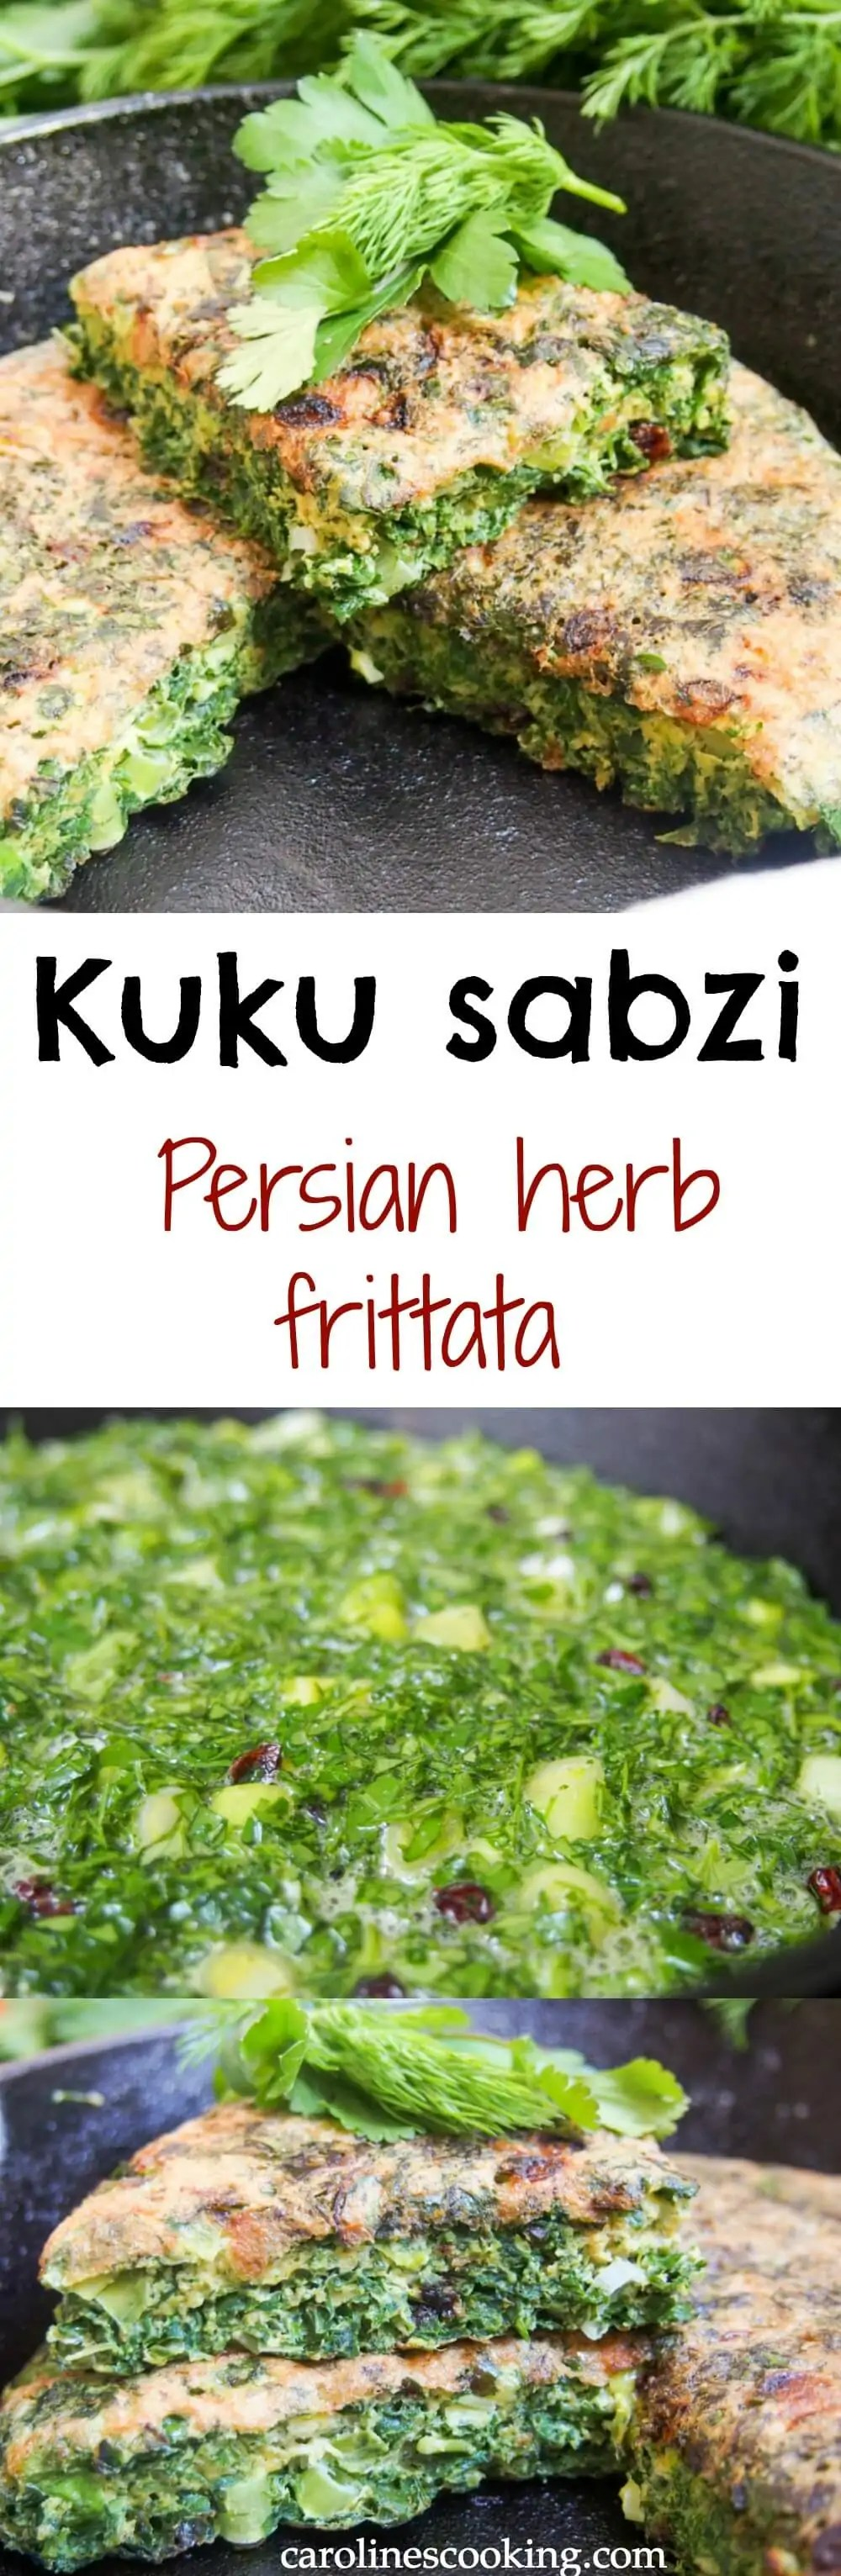 This Persian herb frittata (kuku sabzi) is bright and fresh in both ...